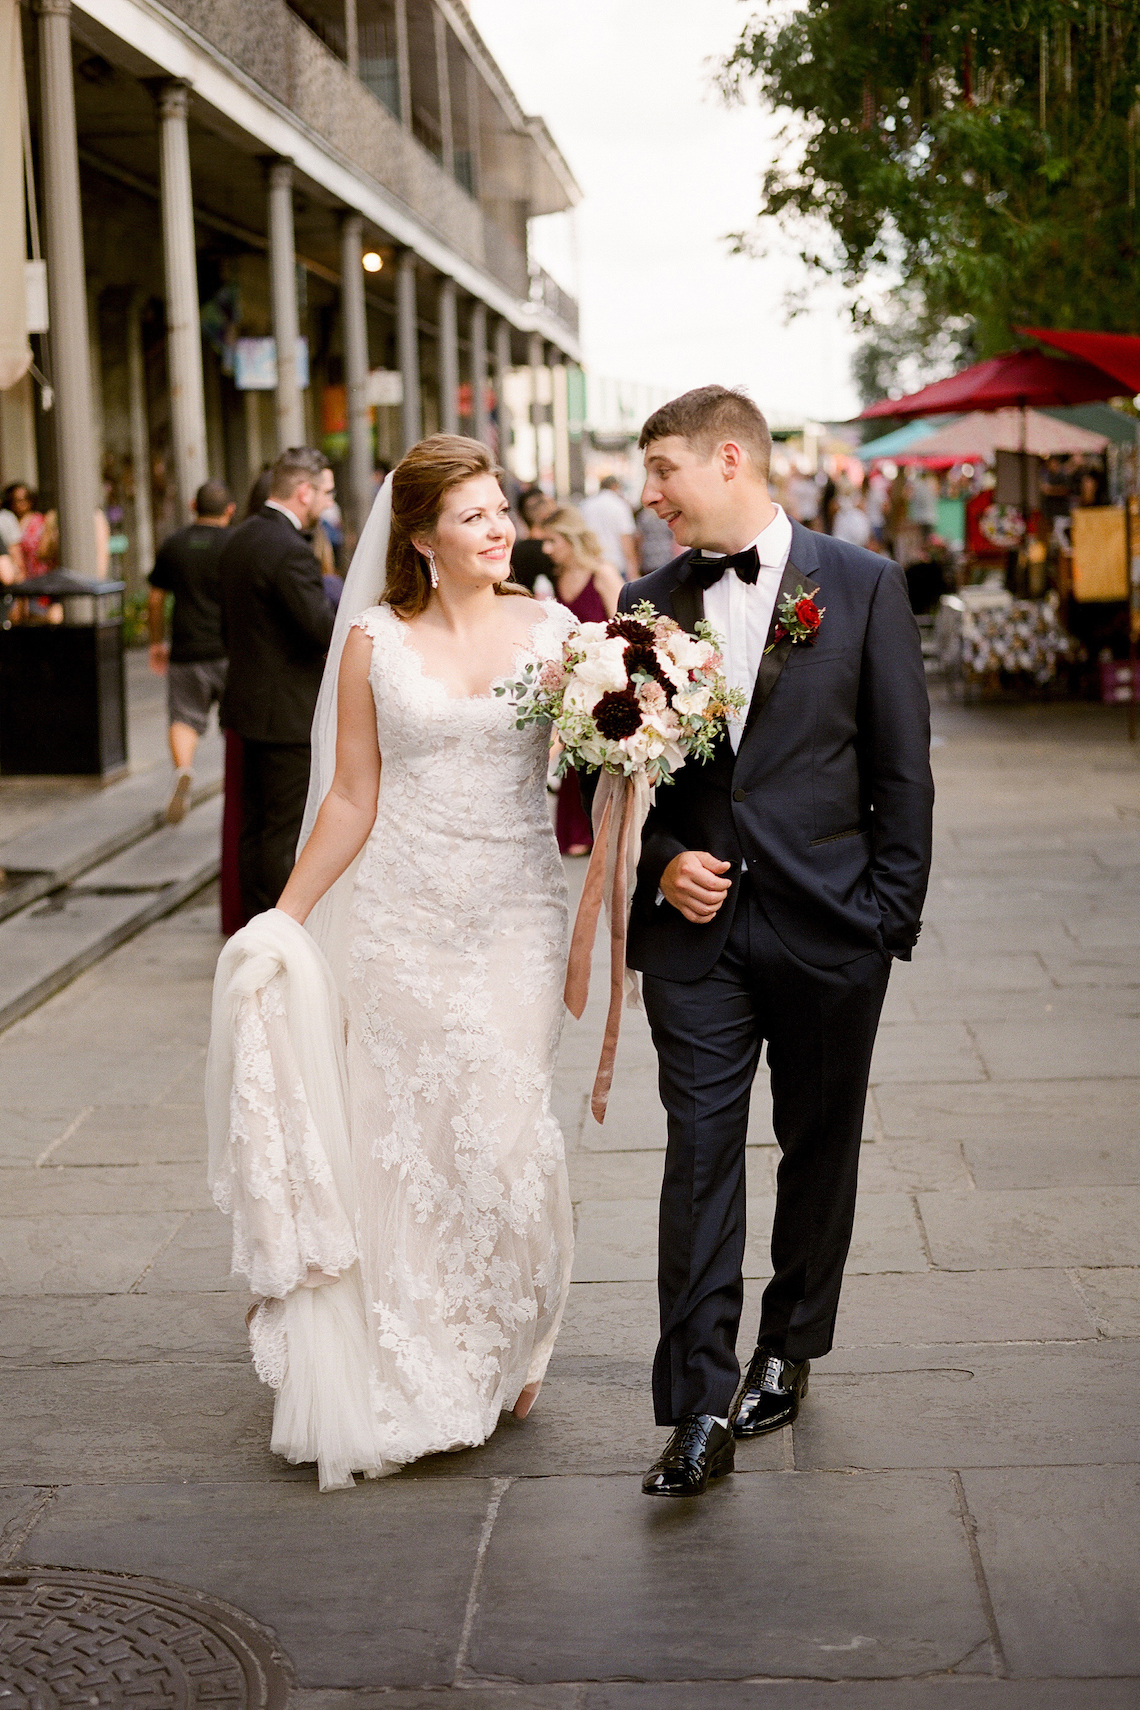 Classy New Orleans Wedding With Brass Band Parade – Arte de Vie Photography 38